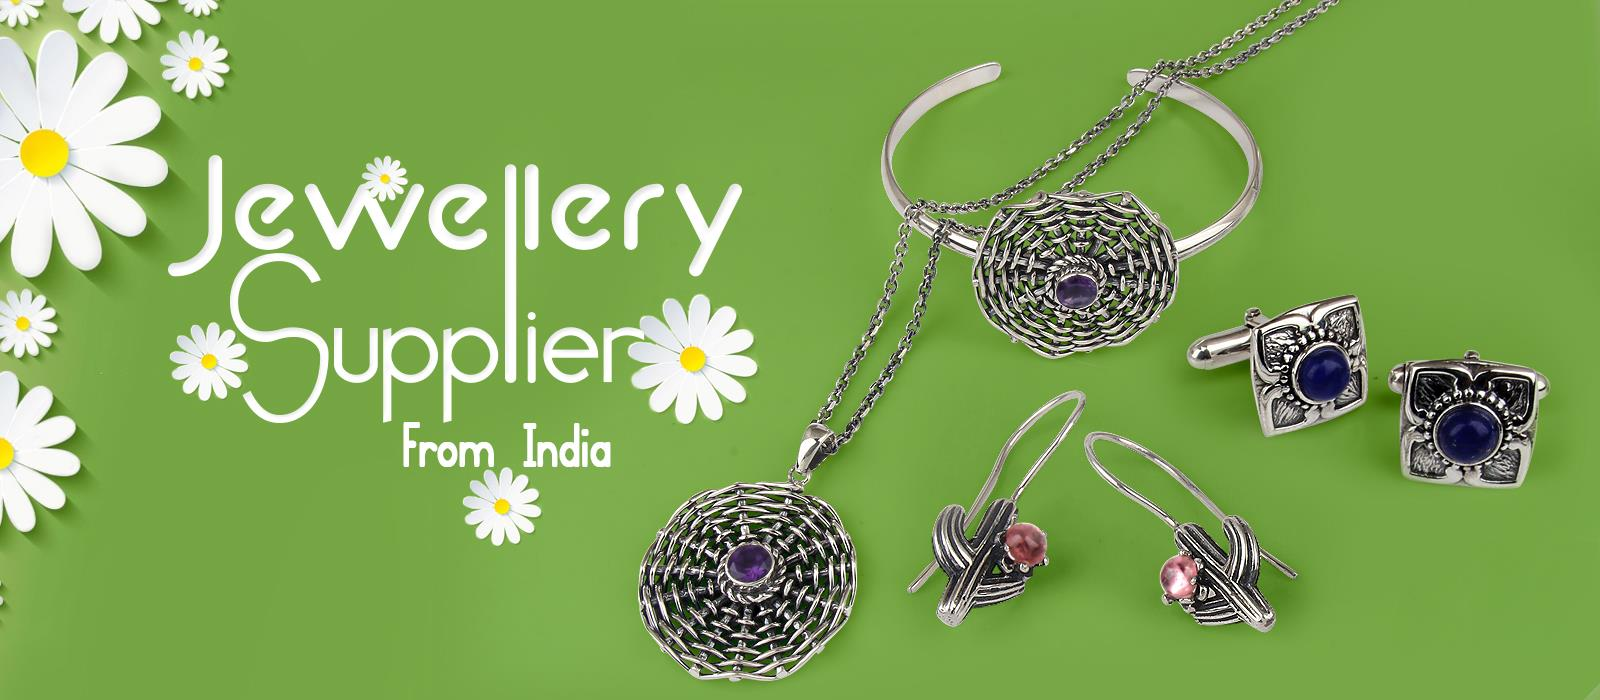 Wholesale jewelry supplier from India